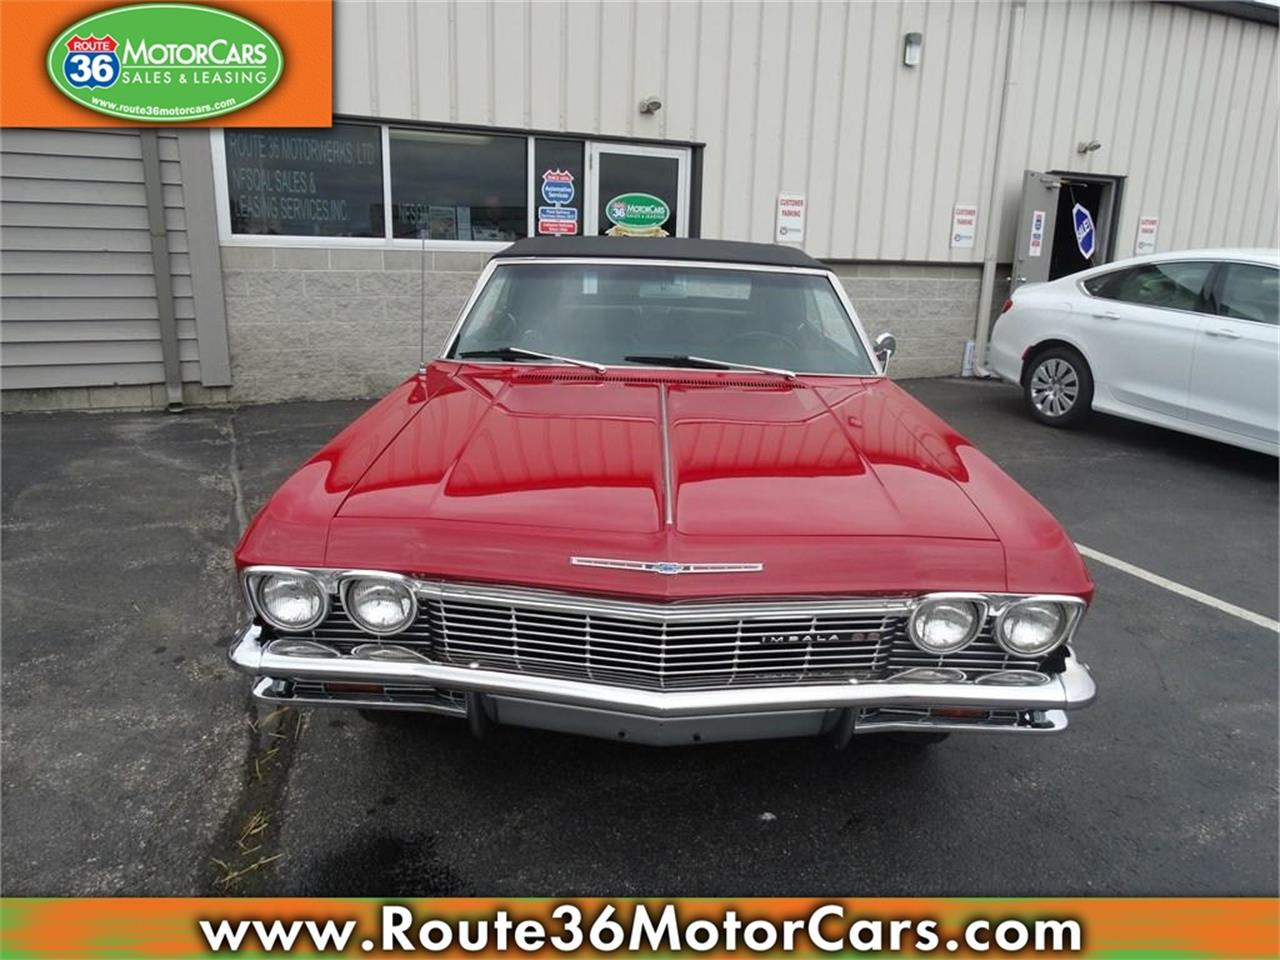 Large Picture of Classic 1965 Chevrolet Impala SS Offered by Route 36 Motor Cars - IKGZ